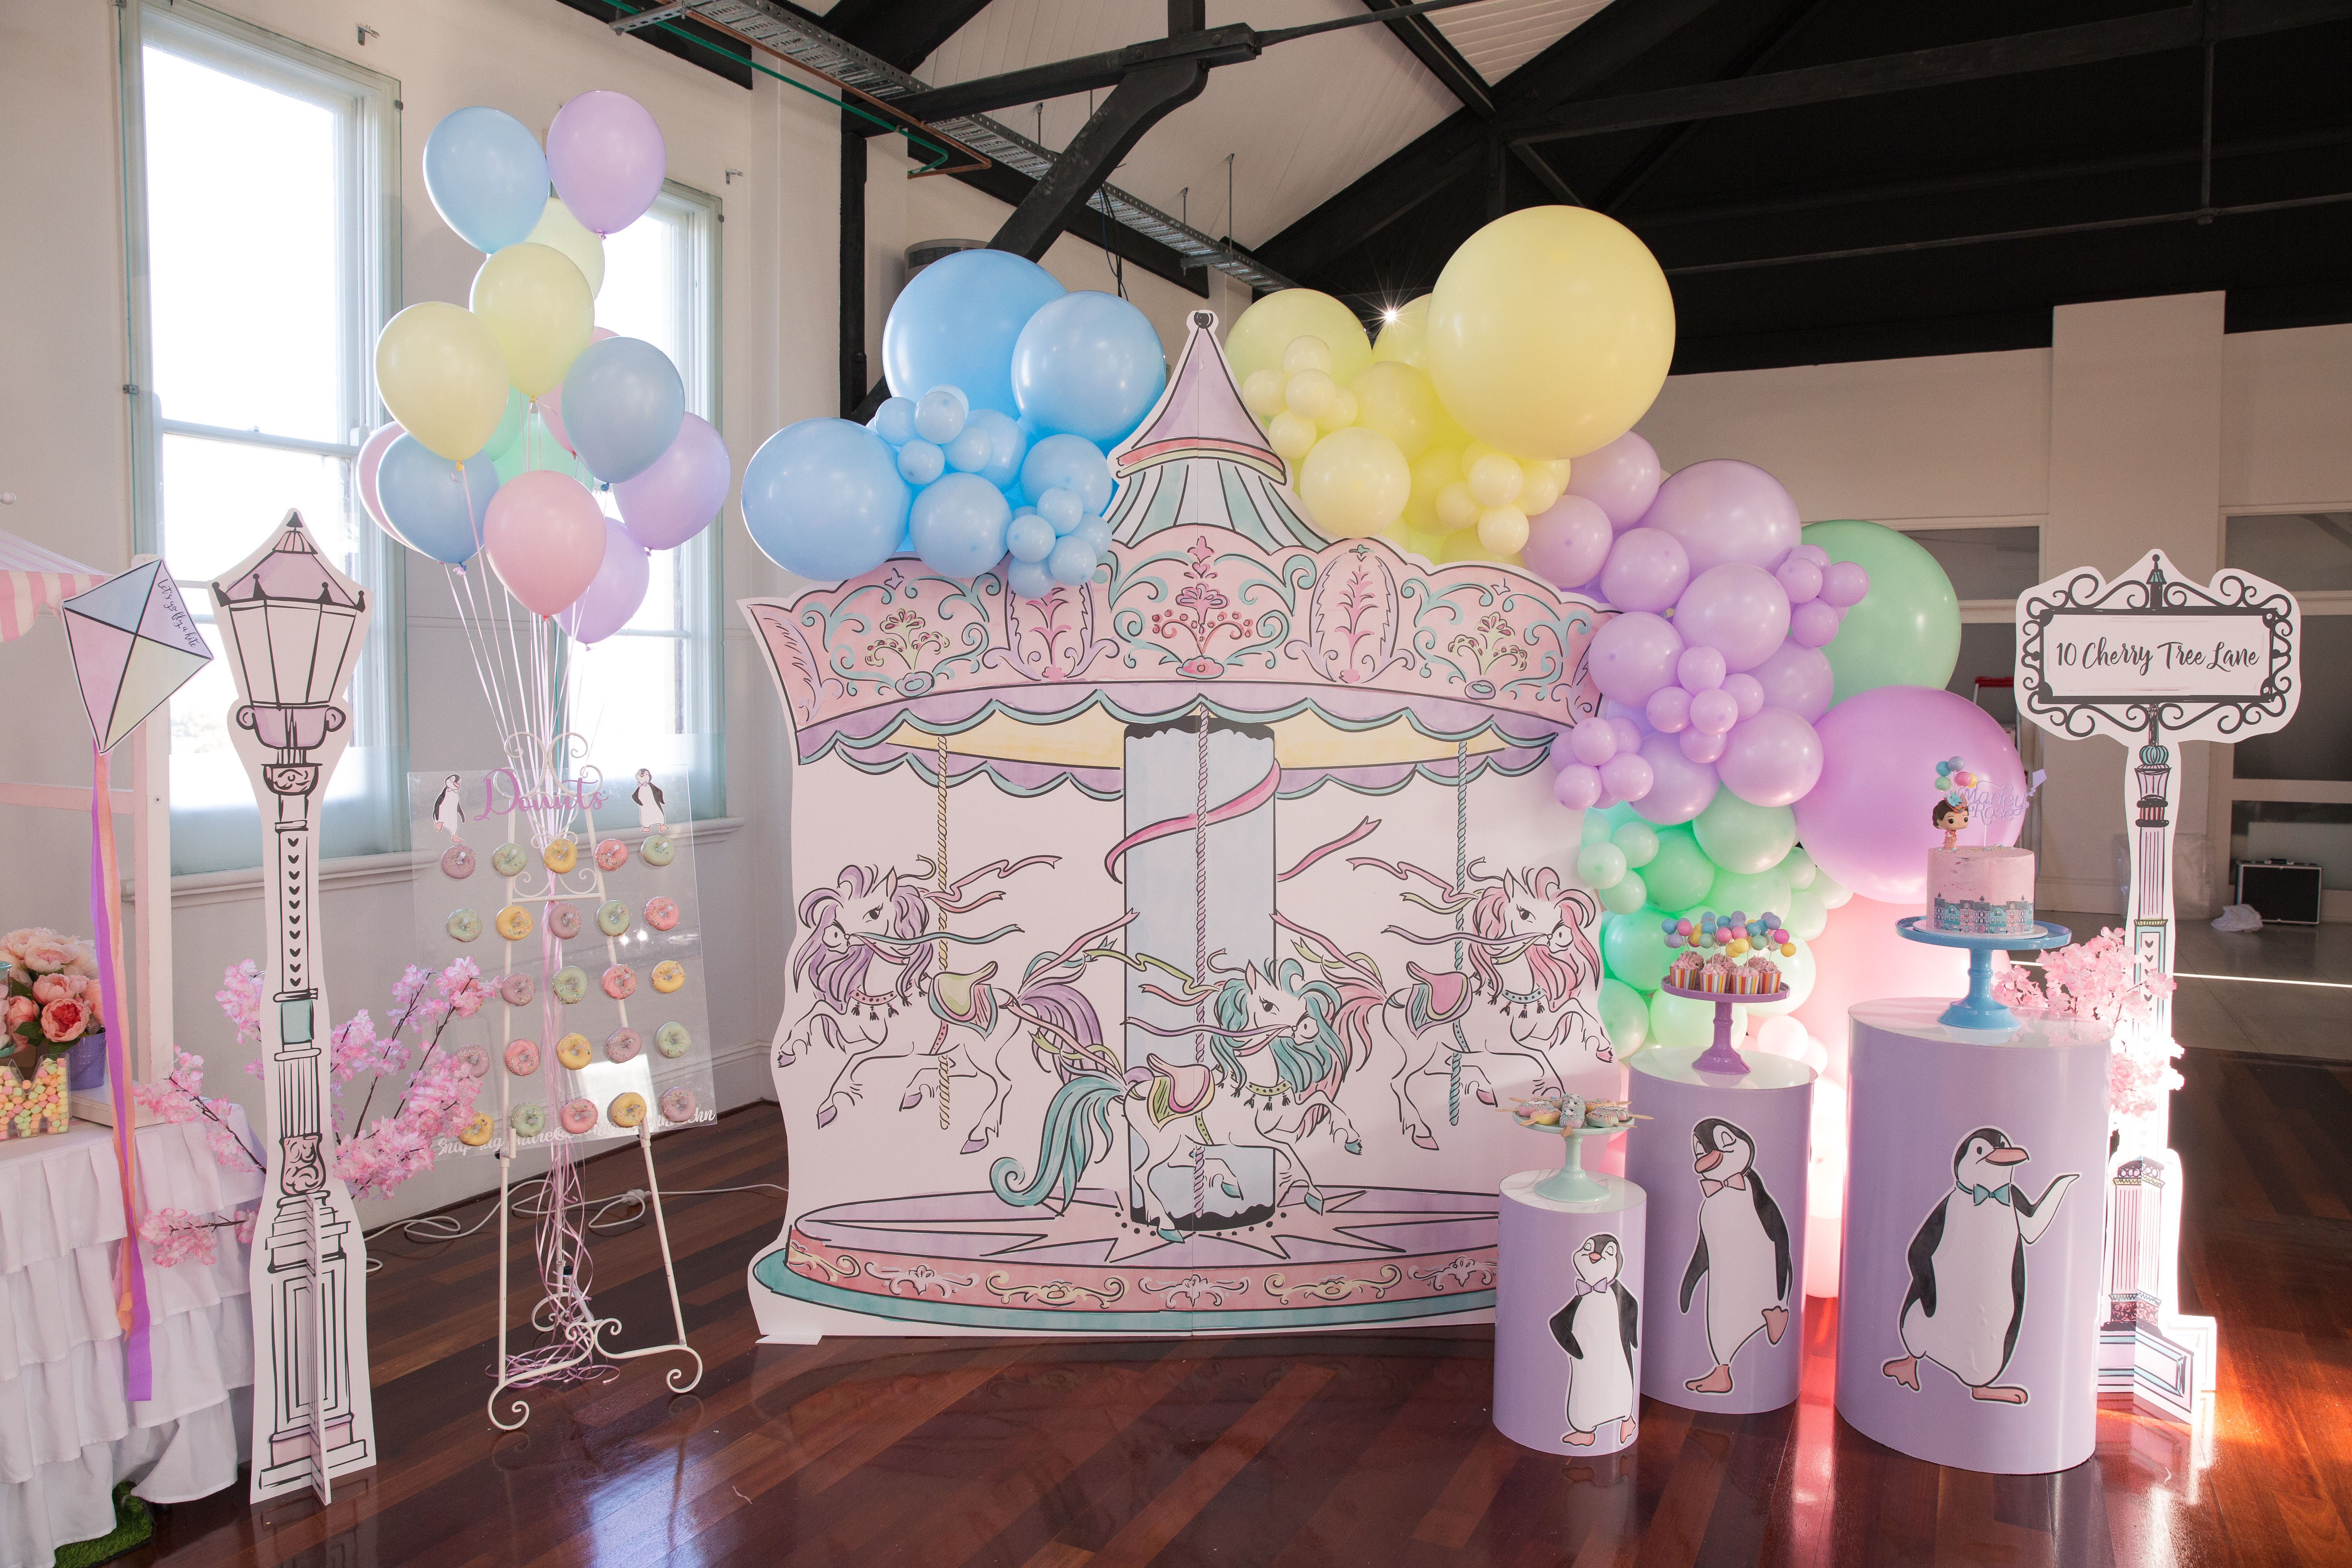 Event Styling, Desserts, Cake & Donut Wall by Cookie Queen